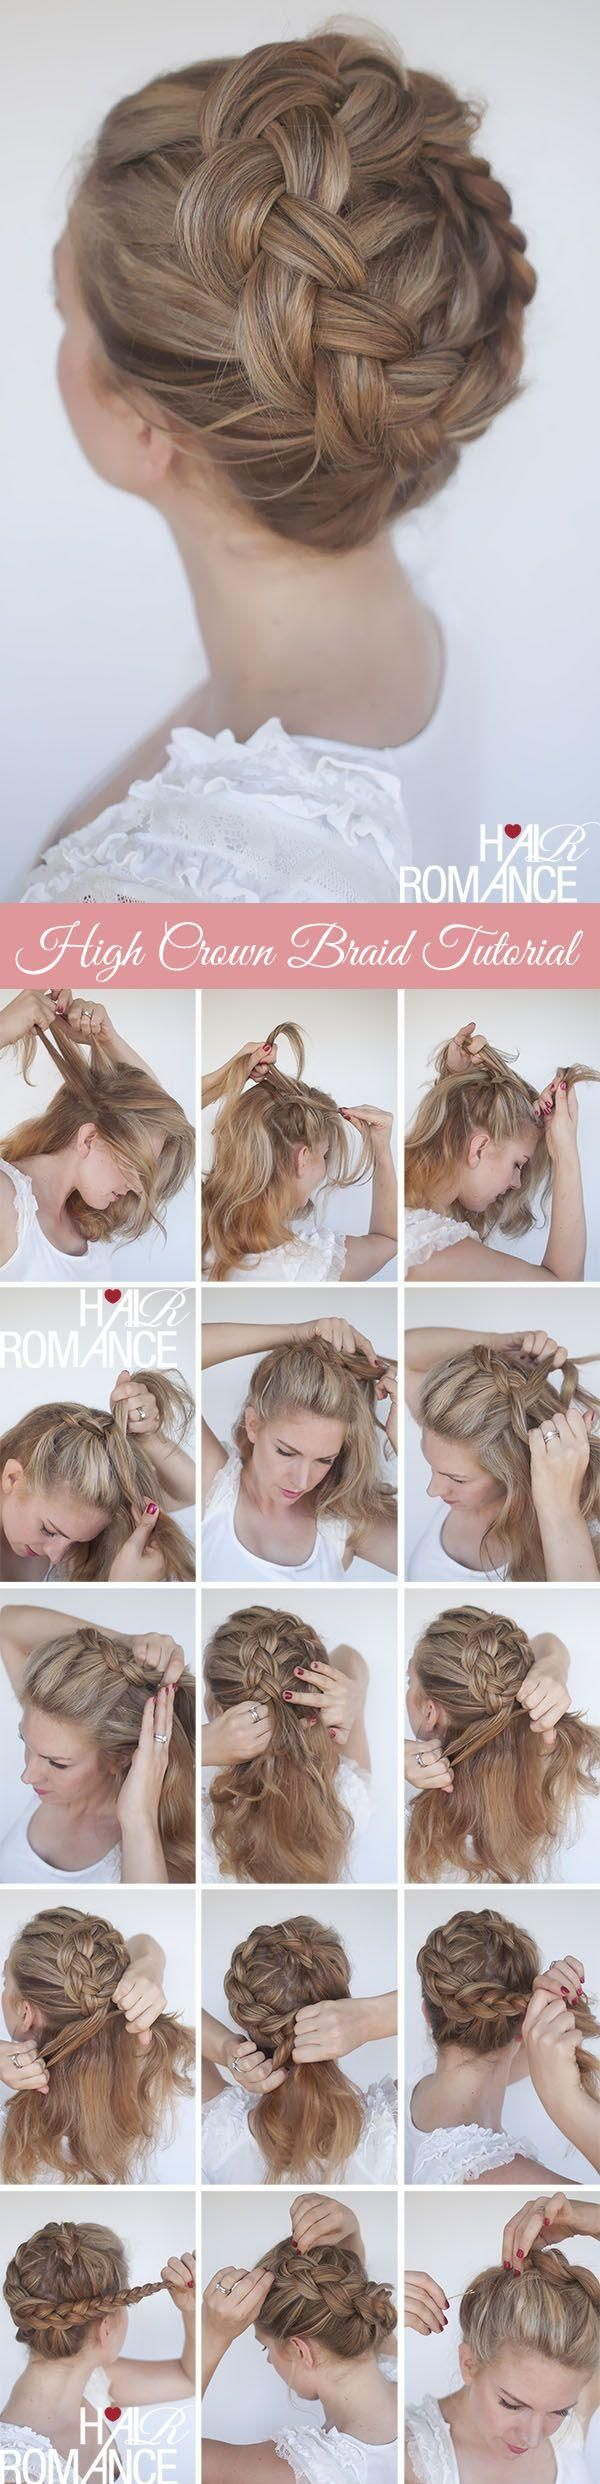 DIY High Crown Braid Tutorial